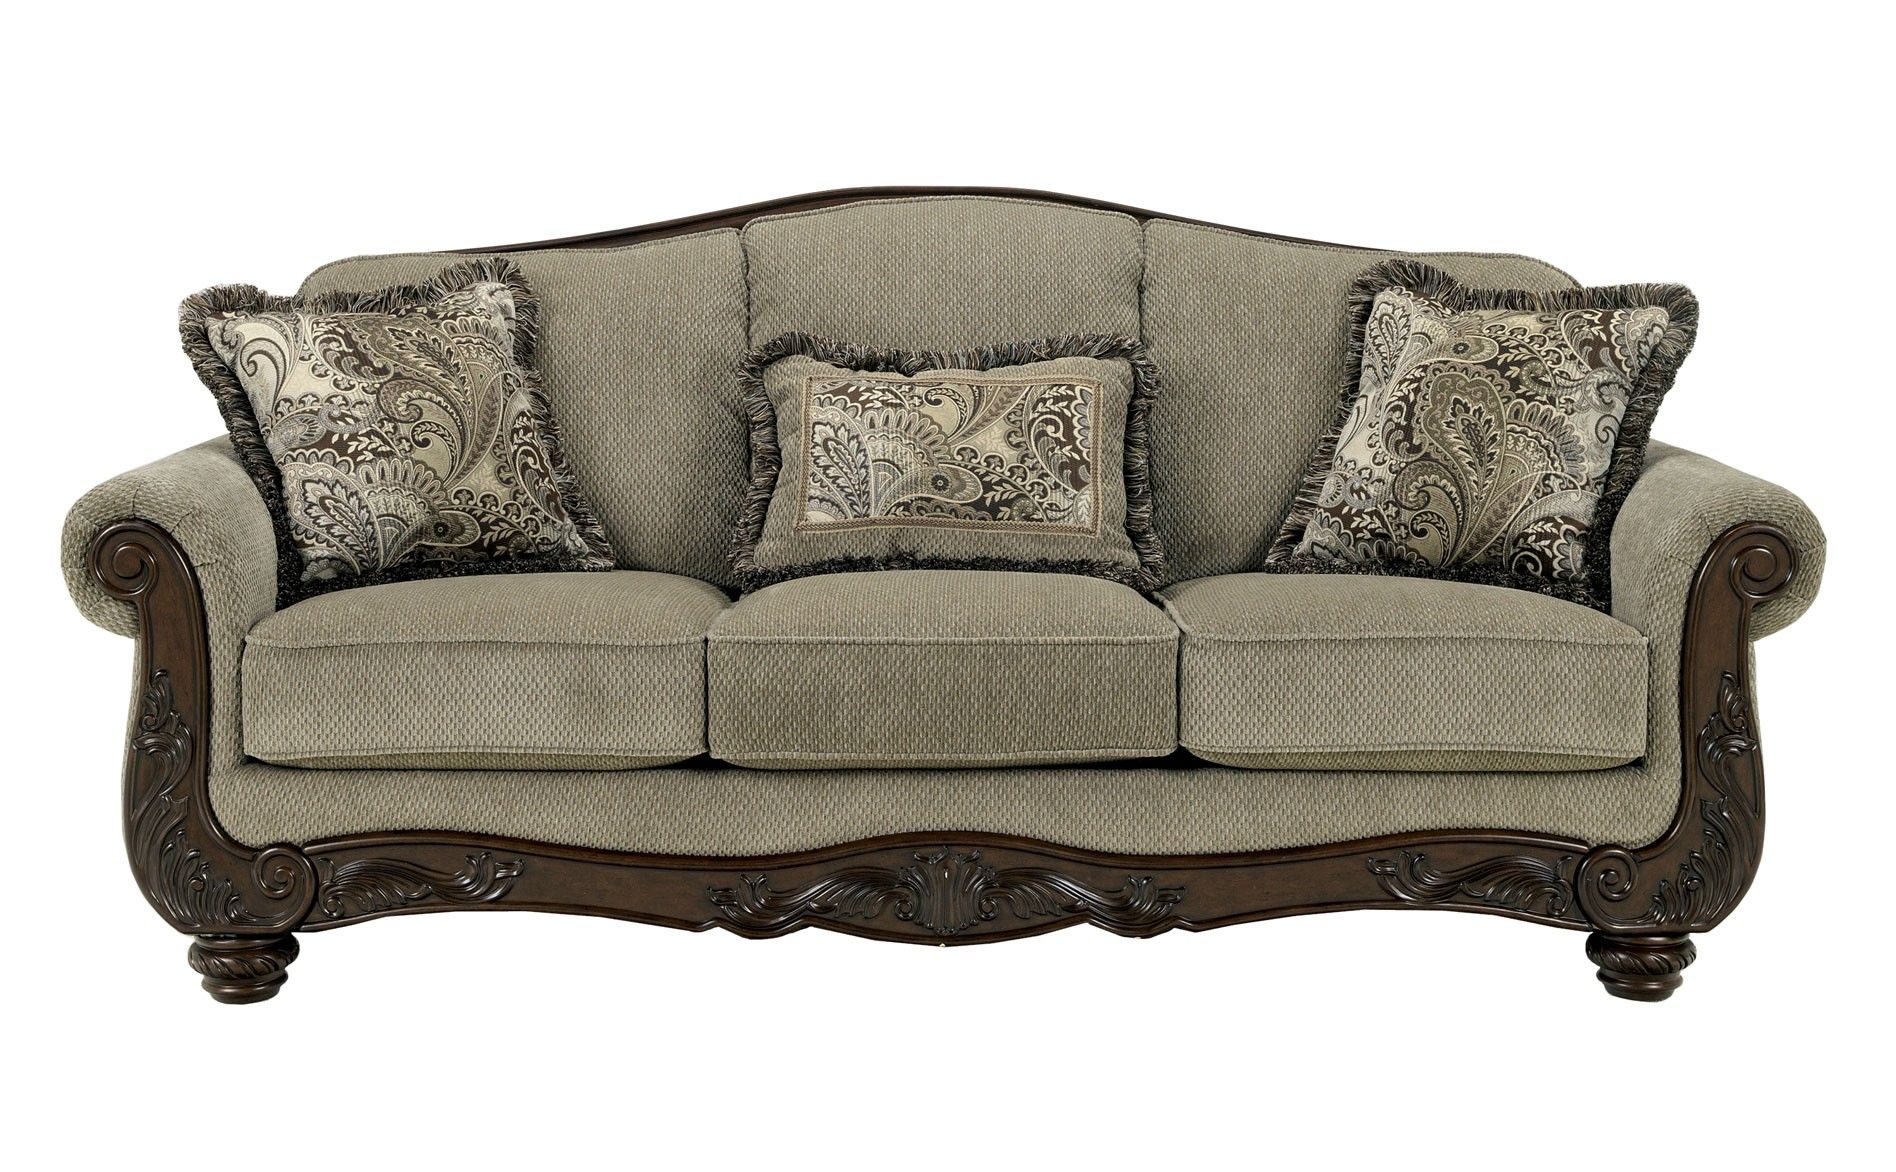 cool sofas and loveseats plan-Awesome sofas and Loveseats Design